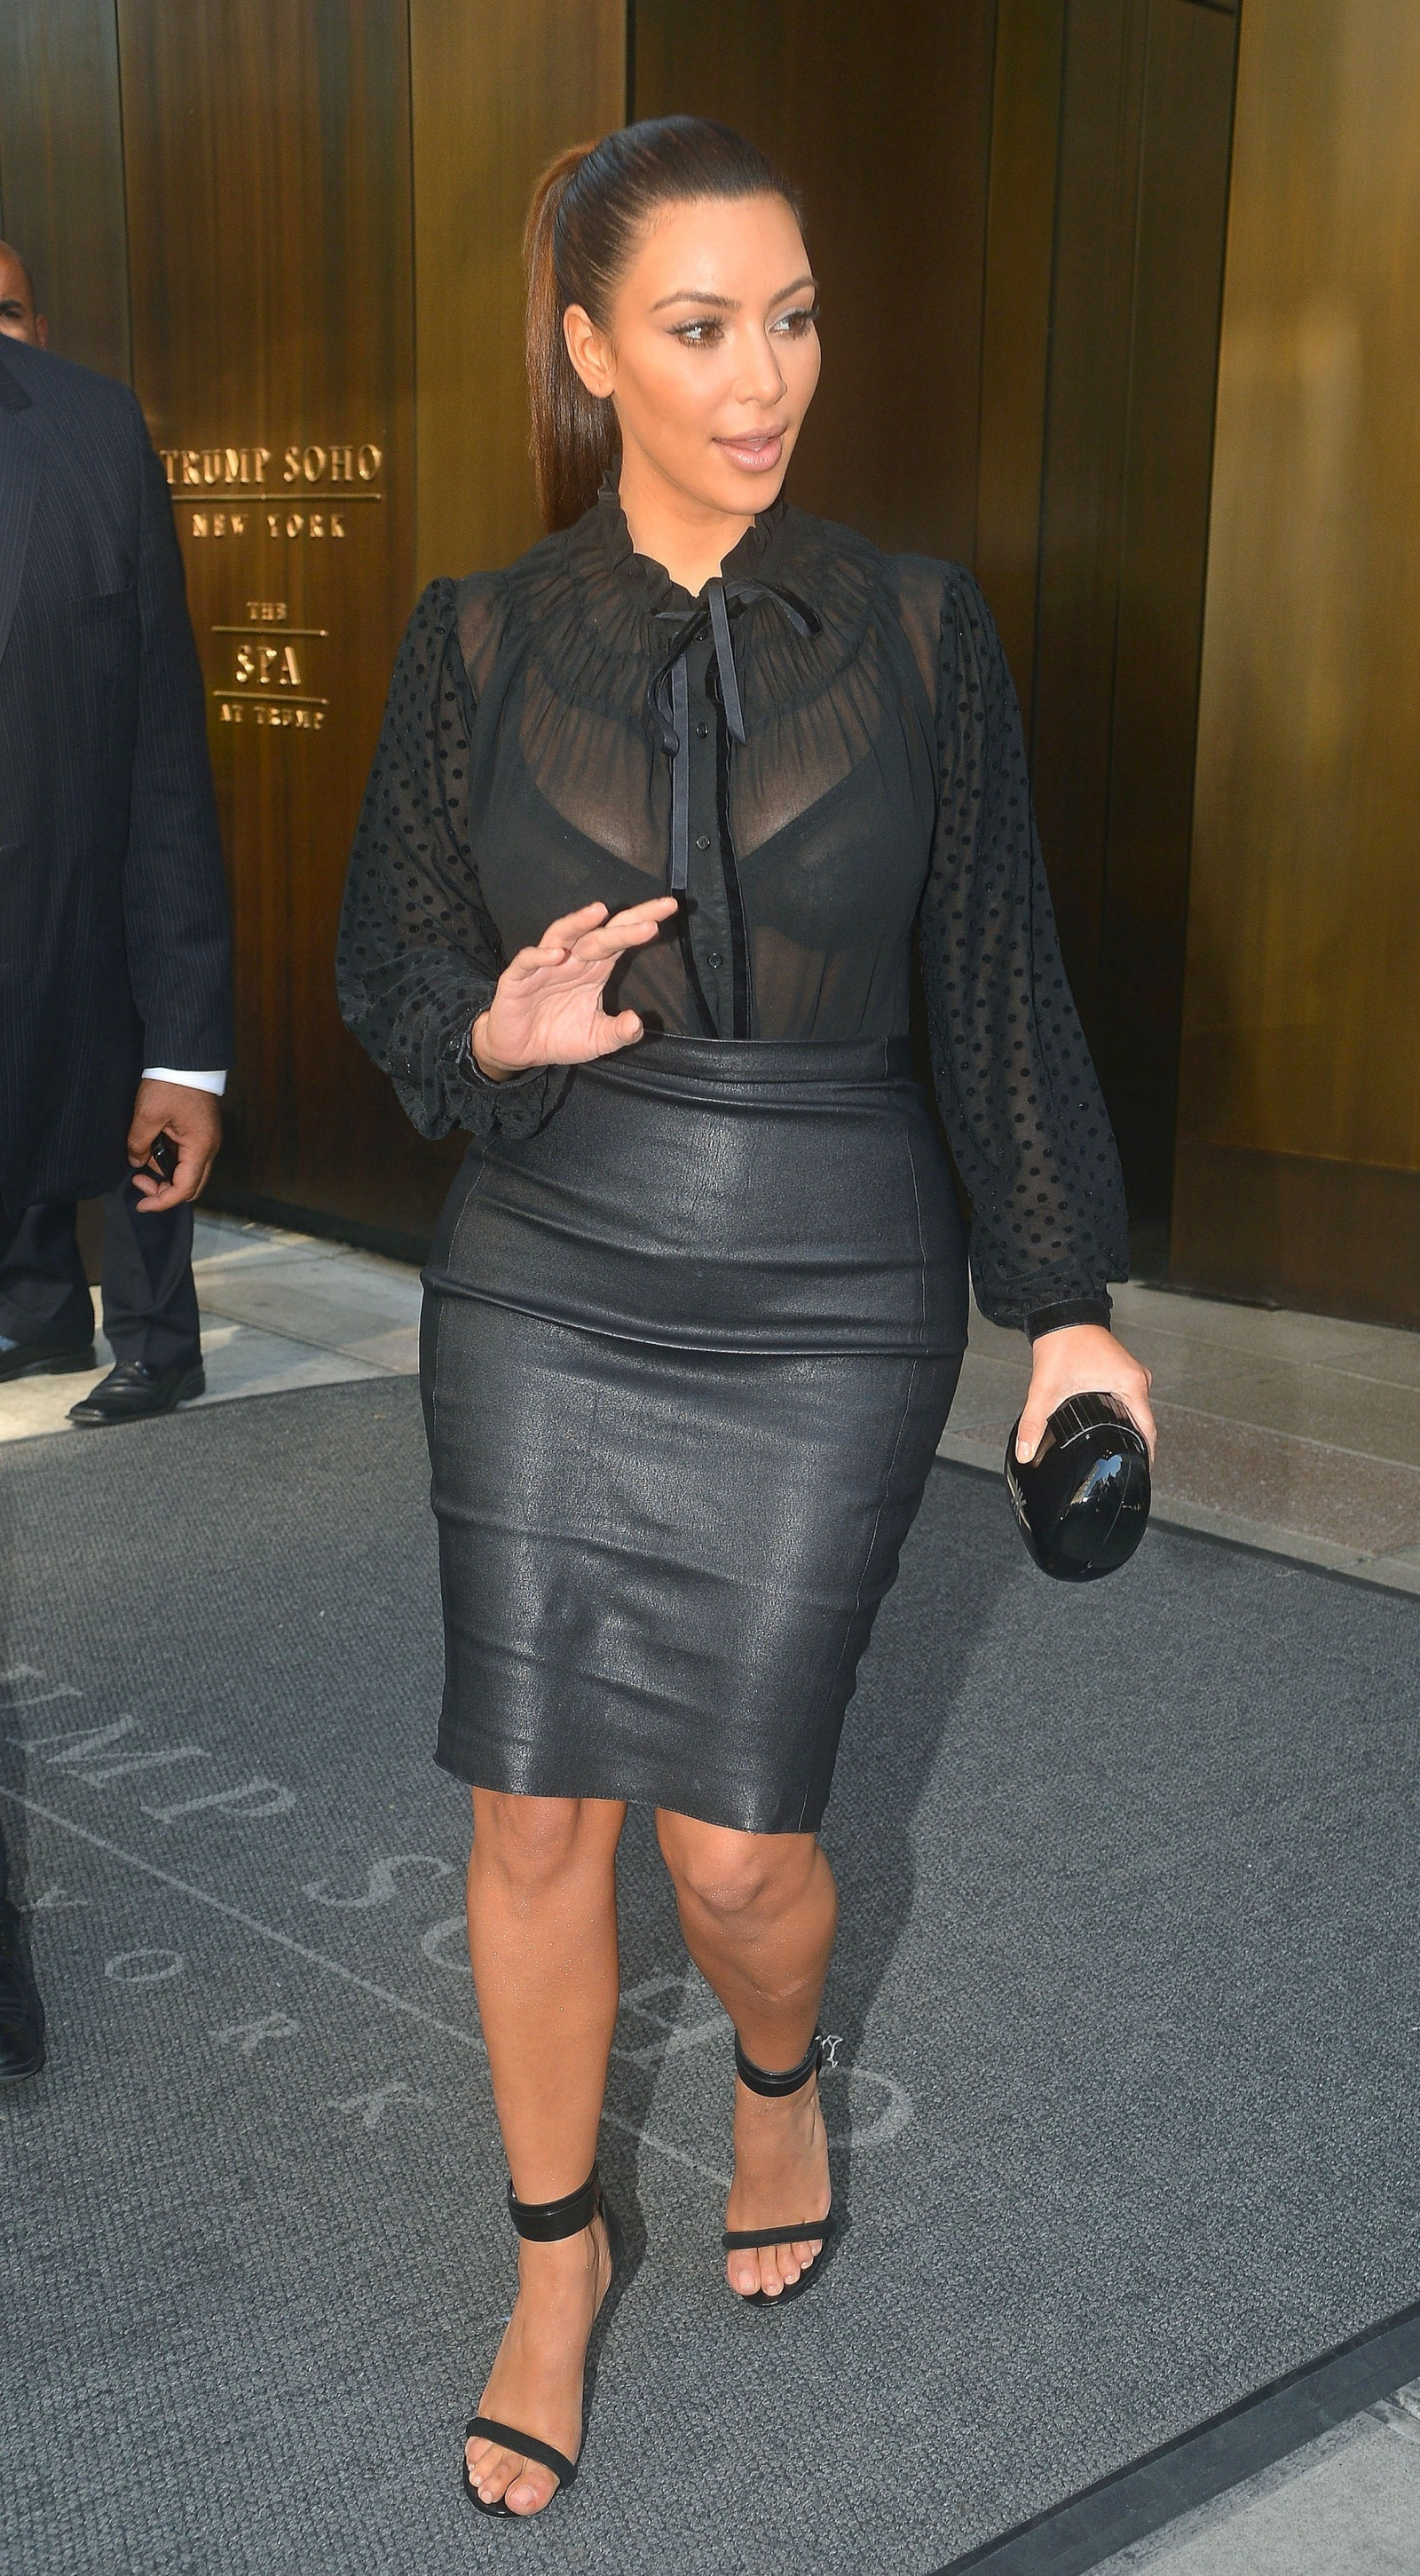 Kim Kardashian - In Tight Leather Skirt-06 - GotCeleb